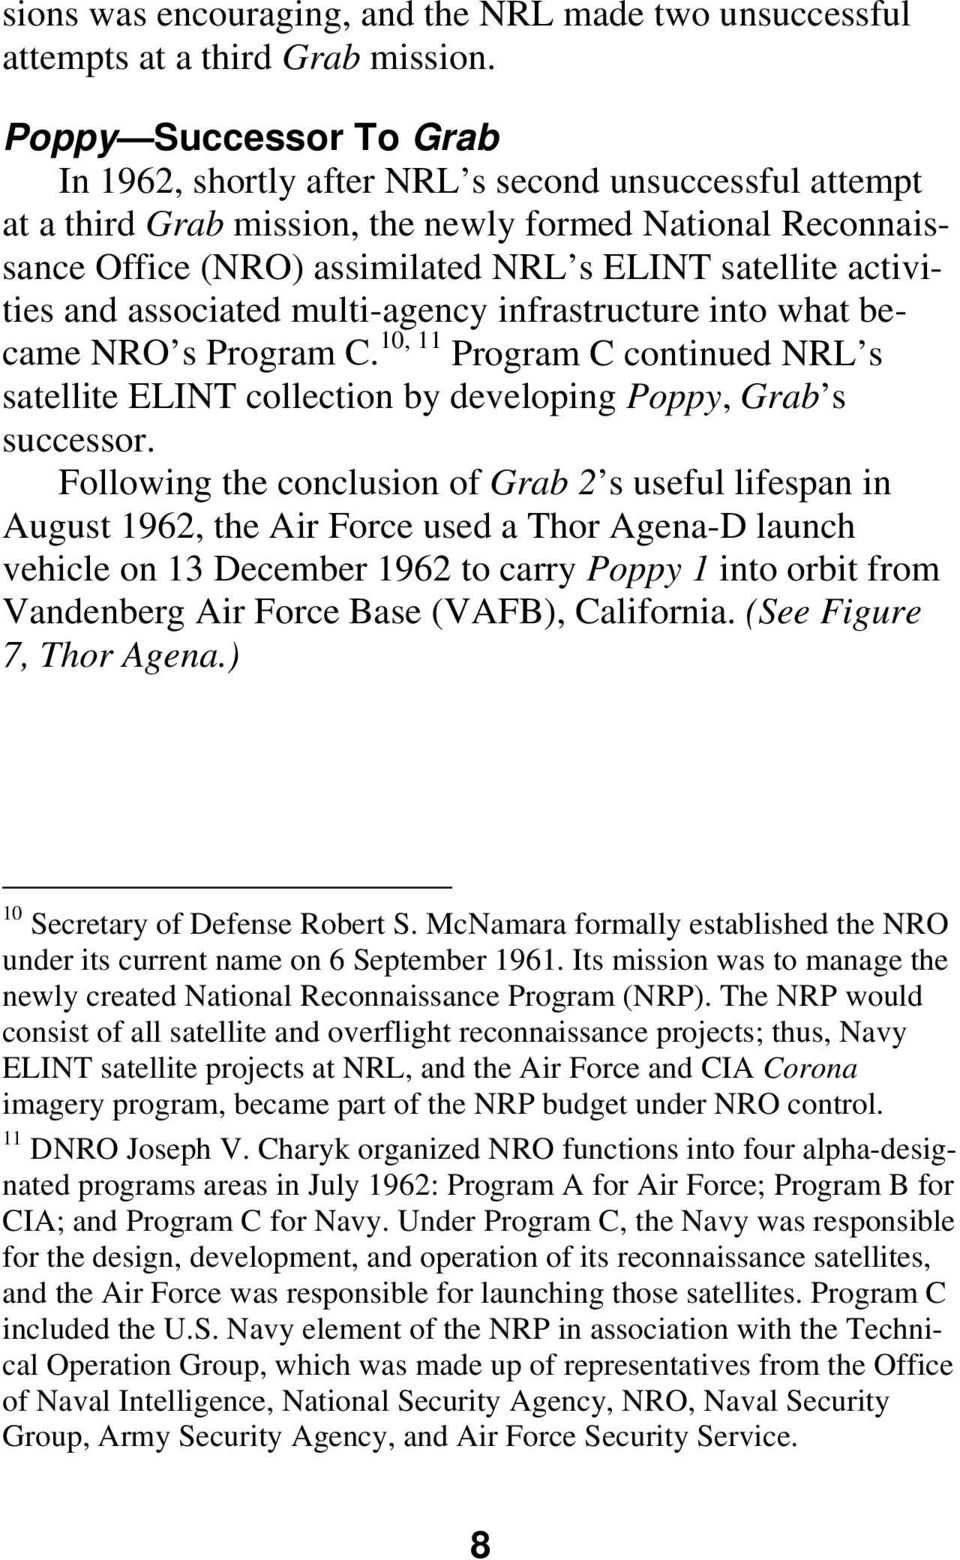 activities and associated multi-agency infrastructure into what became NRO s Program C. 10, 11 Program C continued NRL s satellite ELINT collection by developing Poppy, Grab s successor.